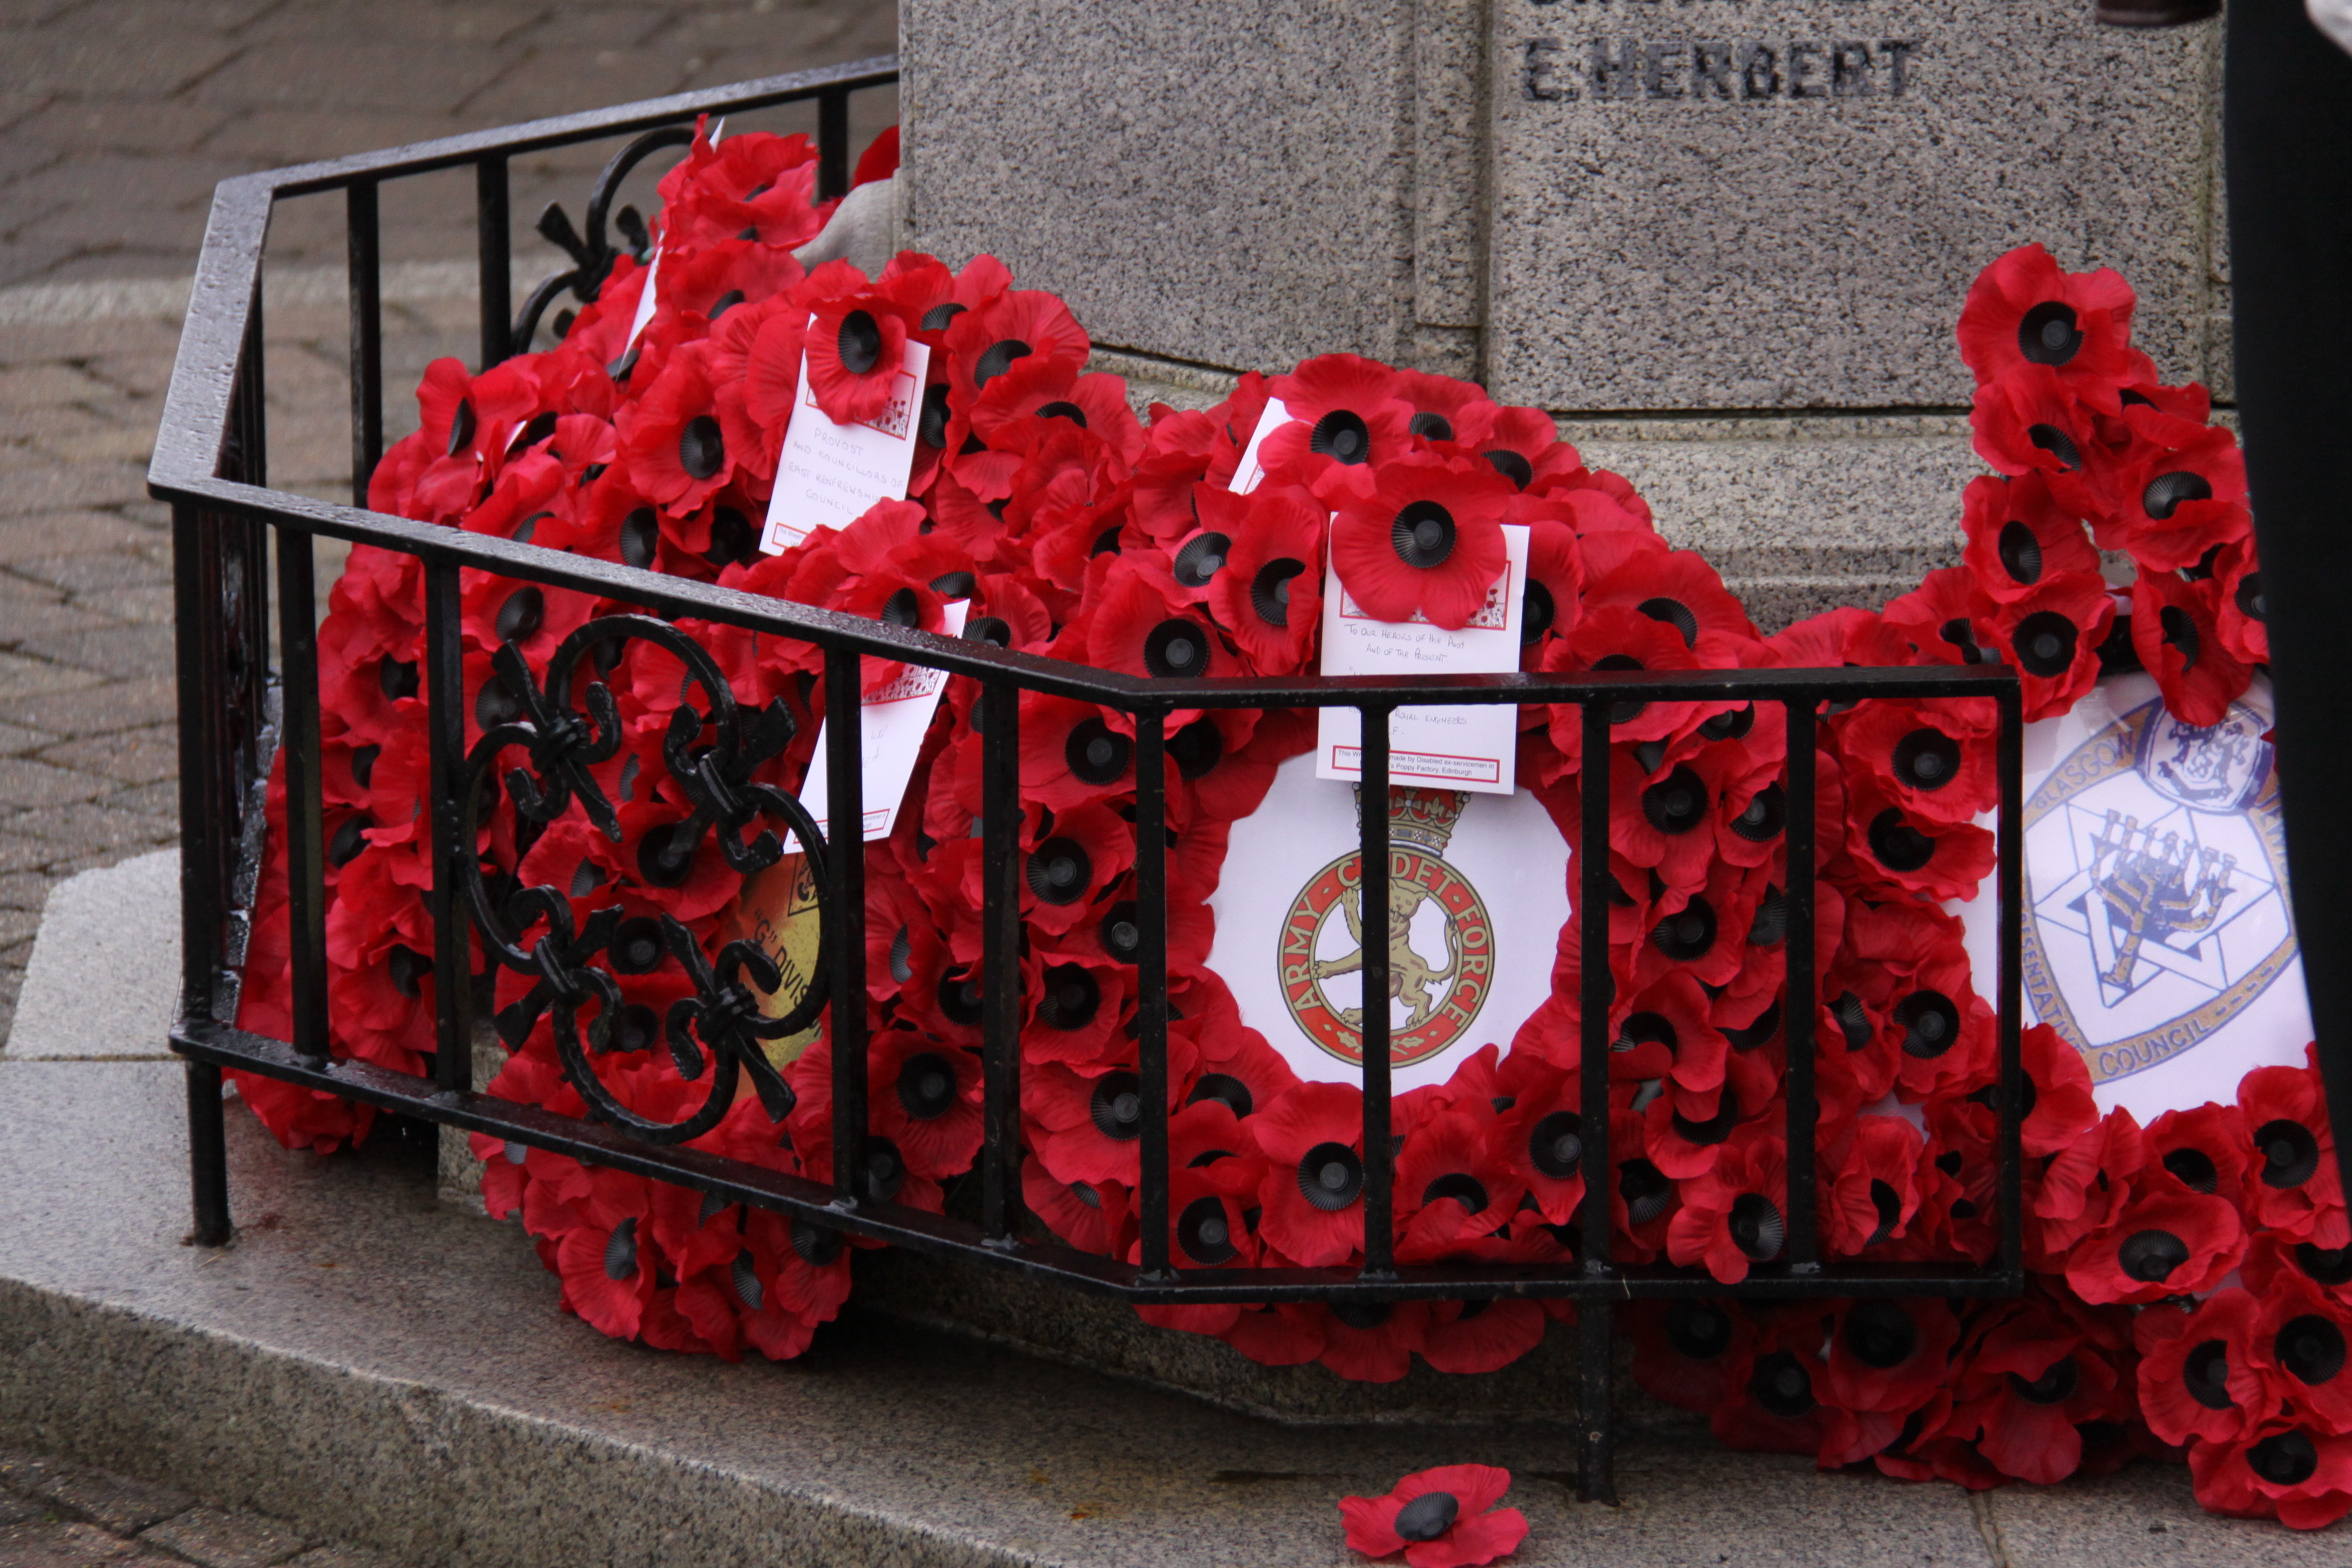 A number of events will take place in East Renfrewshire to mark Remembrance Day